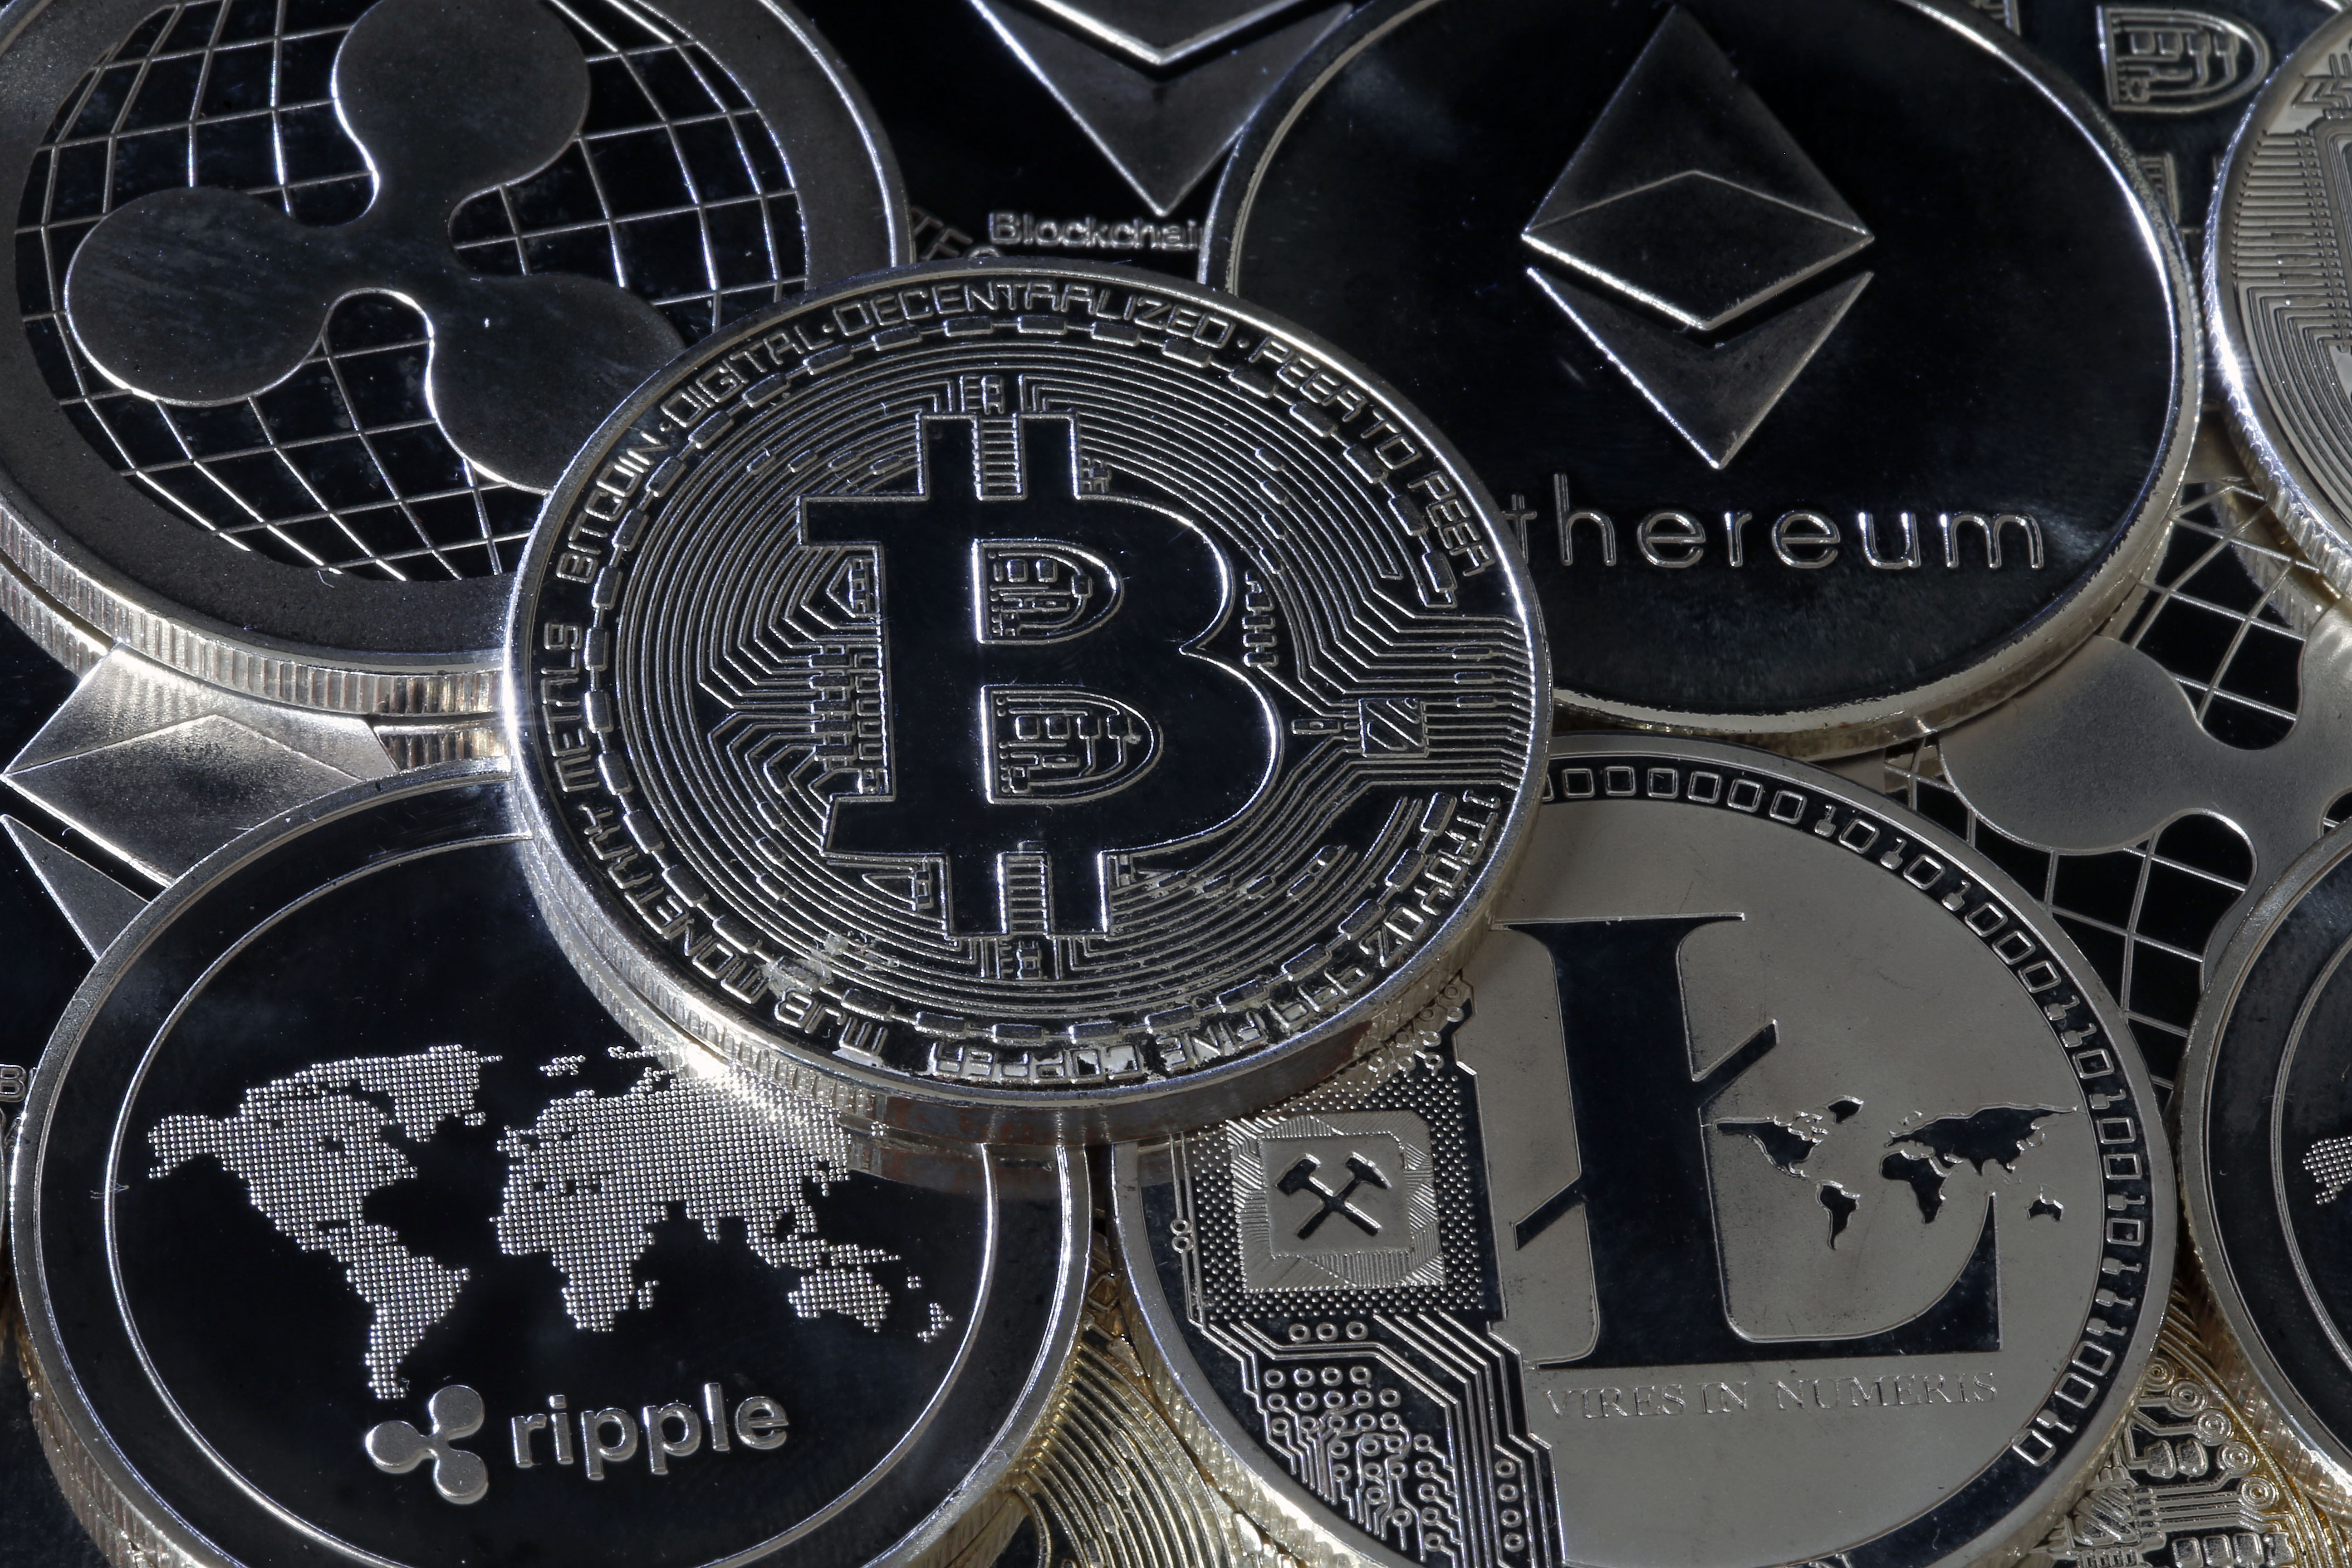 Digital cryptocurrencies Ripple, Bitcoin, Ethereum, and Litecoin represented as silver coins.